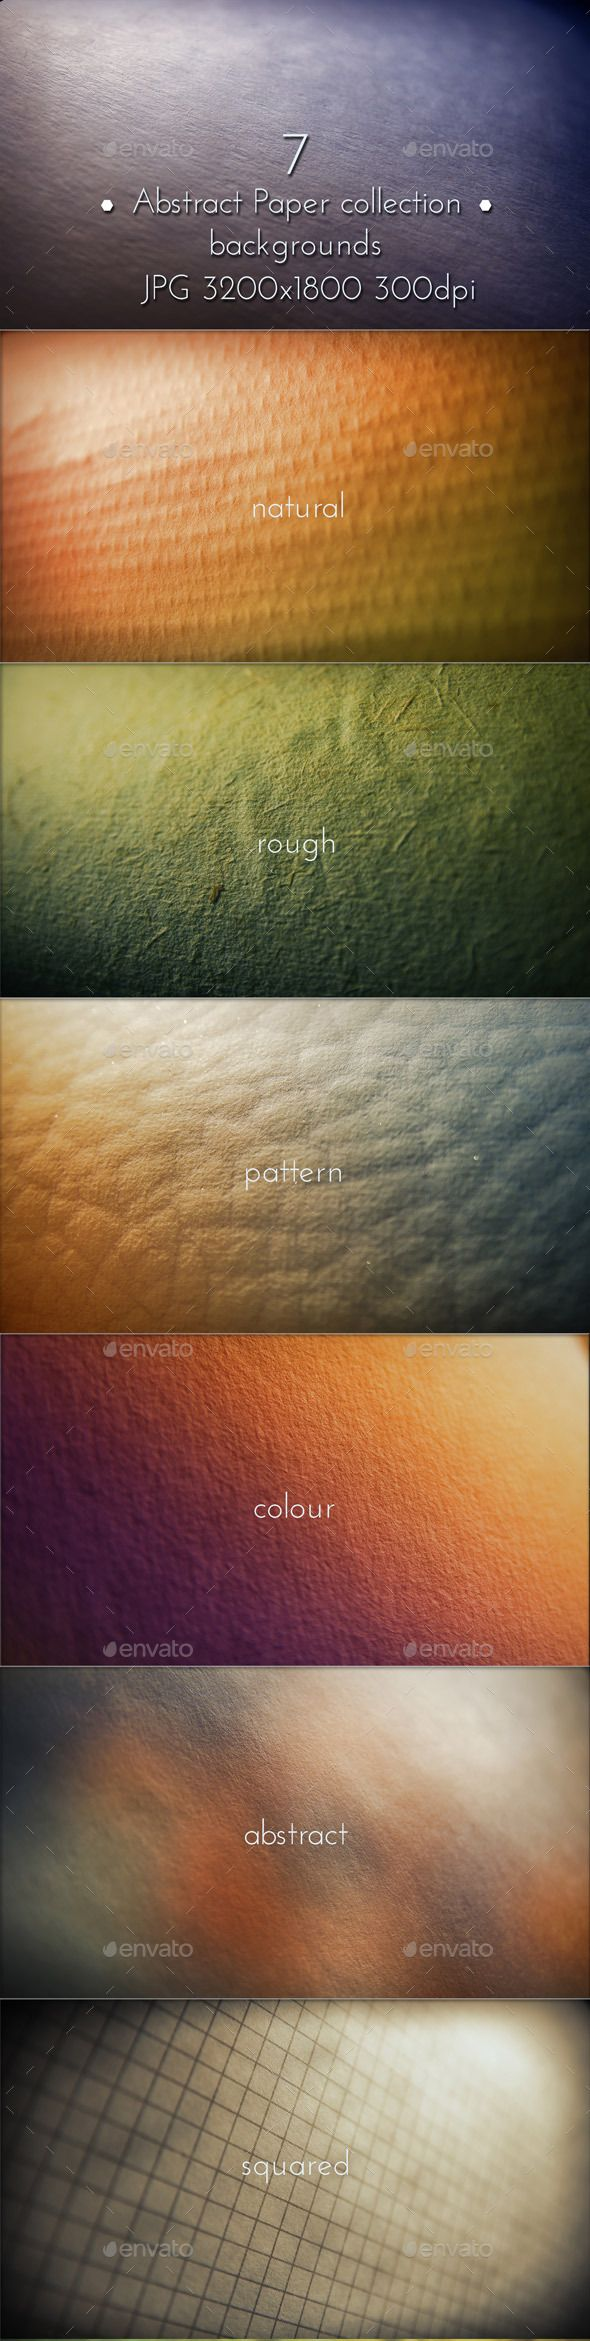 Paper Close Up Surface collection backgrounds. Shallow Depth of Field (Look 100% screenshots). 7 hi-res JPG images. 3200×1800, 300 DPI. #graphicriver #paper #design